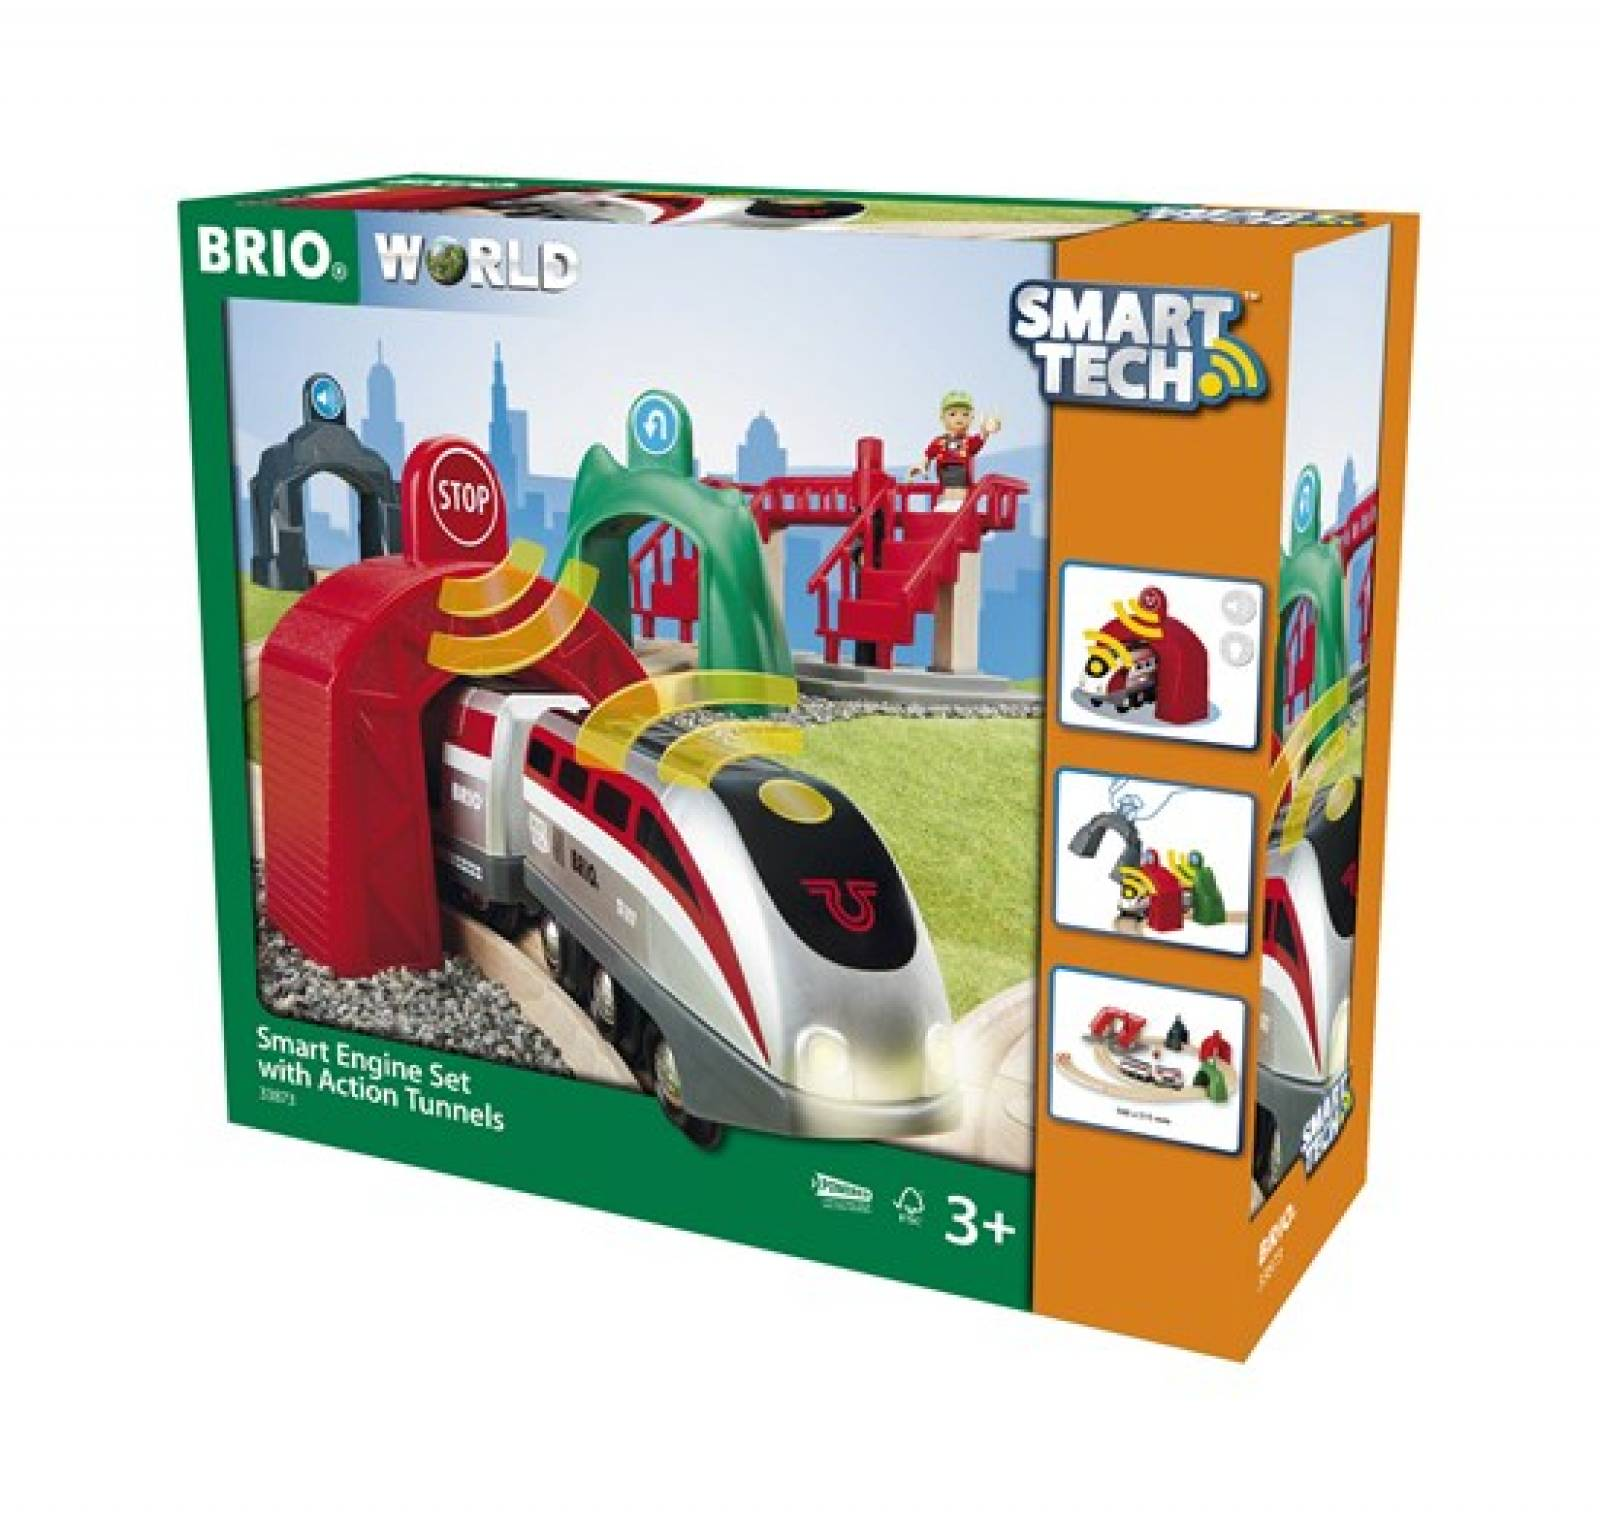 Smart Tech Engine Set + Action Tunnels BRIO® Wooden Railway 3+